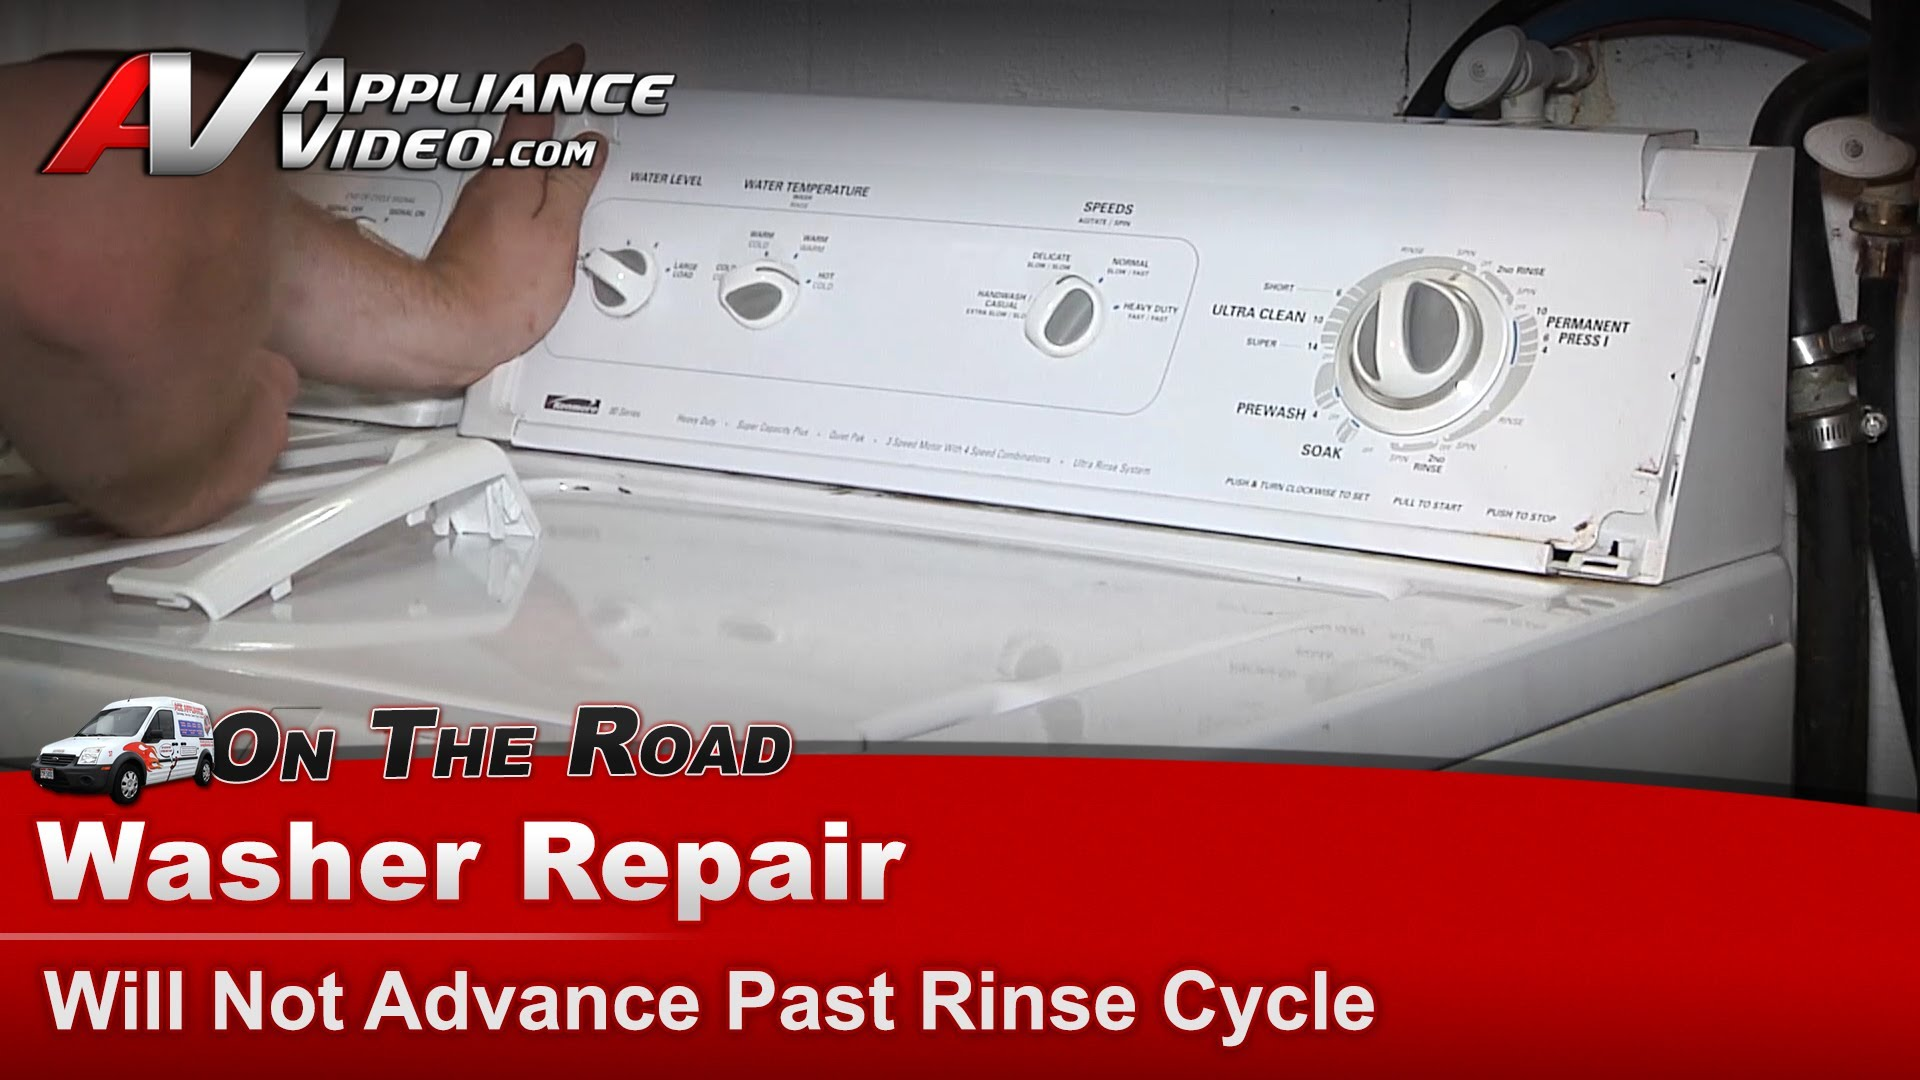 Kenmore 110.238121 Washer Diagnostic and Repair – Will not advance past  rinse cycle – Lid Switch | Appliance Video